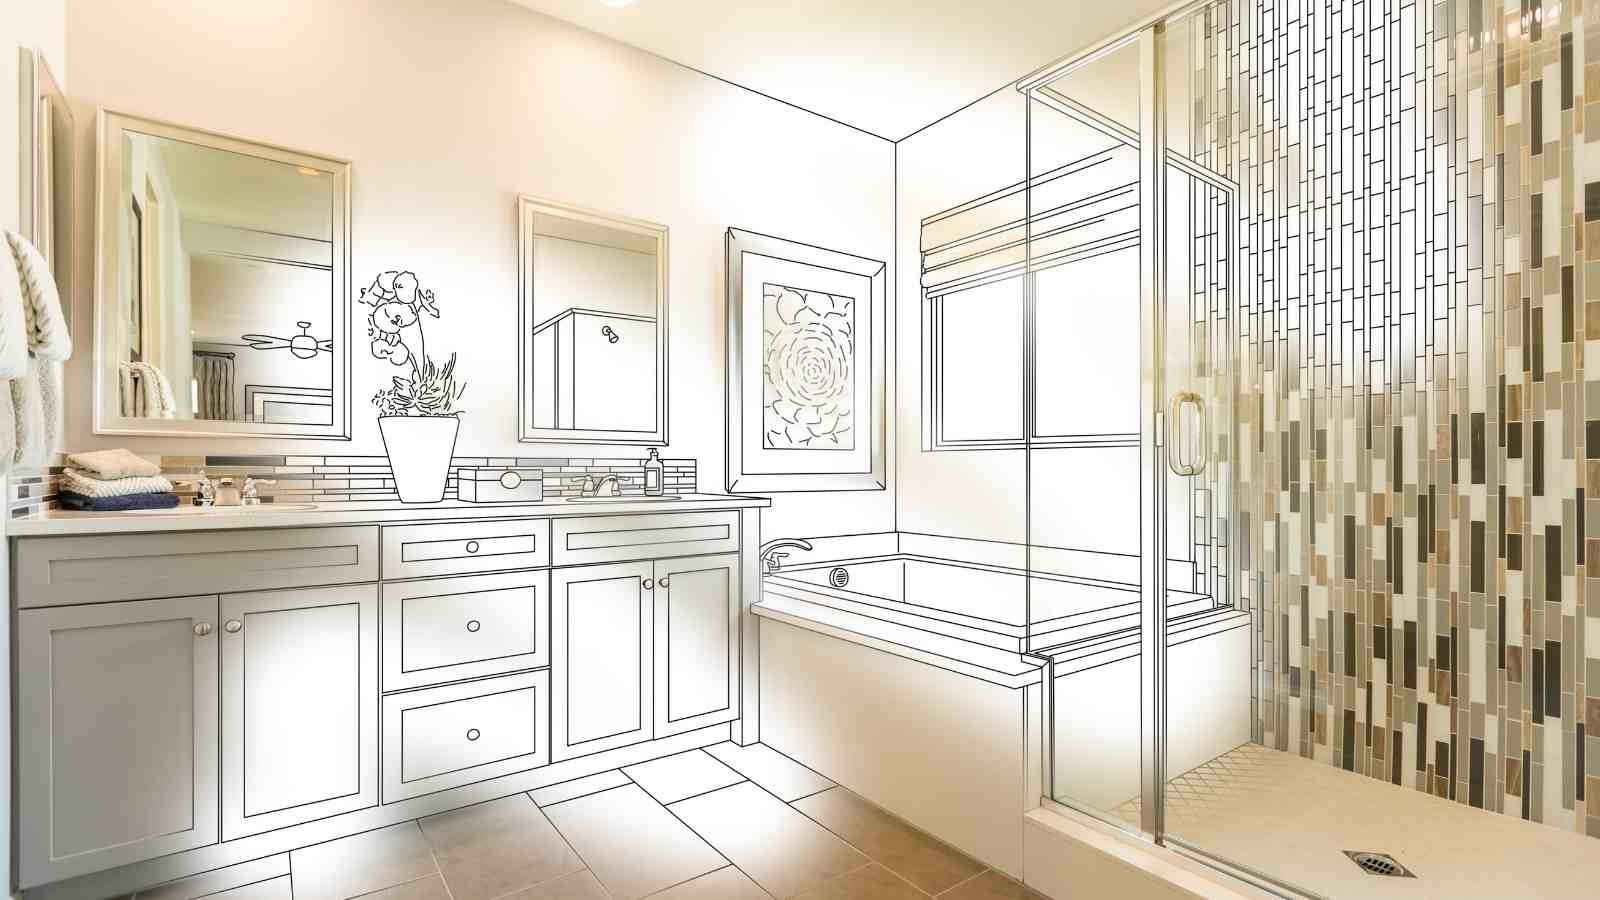 35 Amazing Bathroom Remodel DIY Ideas that Give a Stunning ... on Remodeling Ideas  id=62086